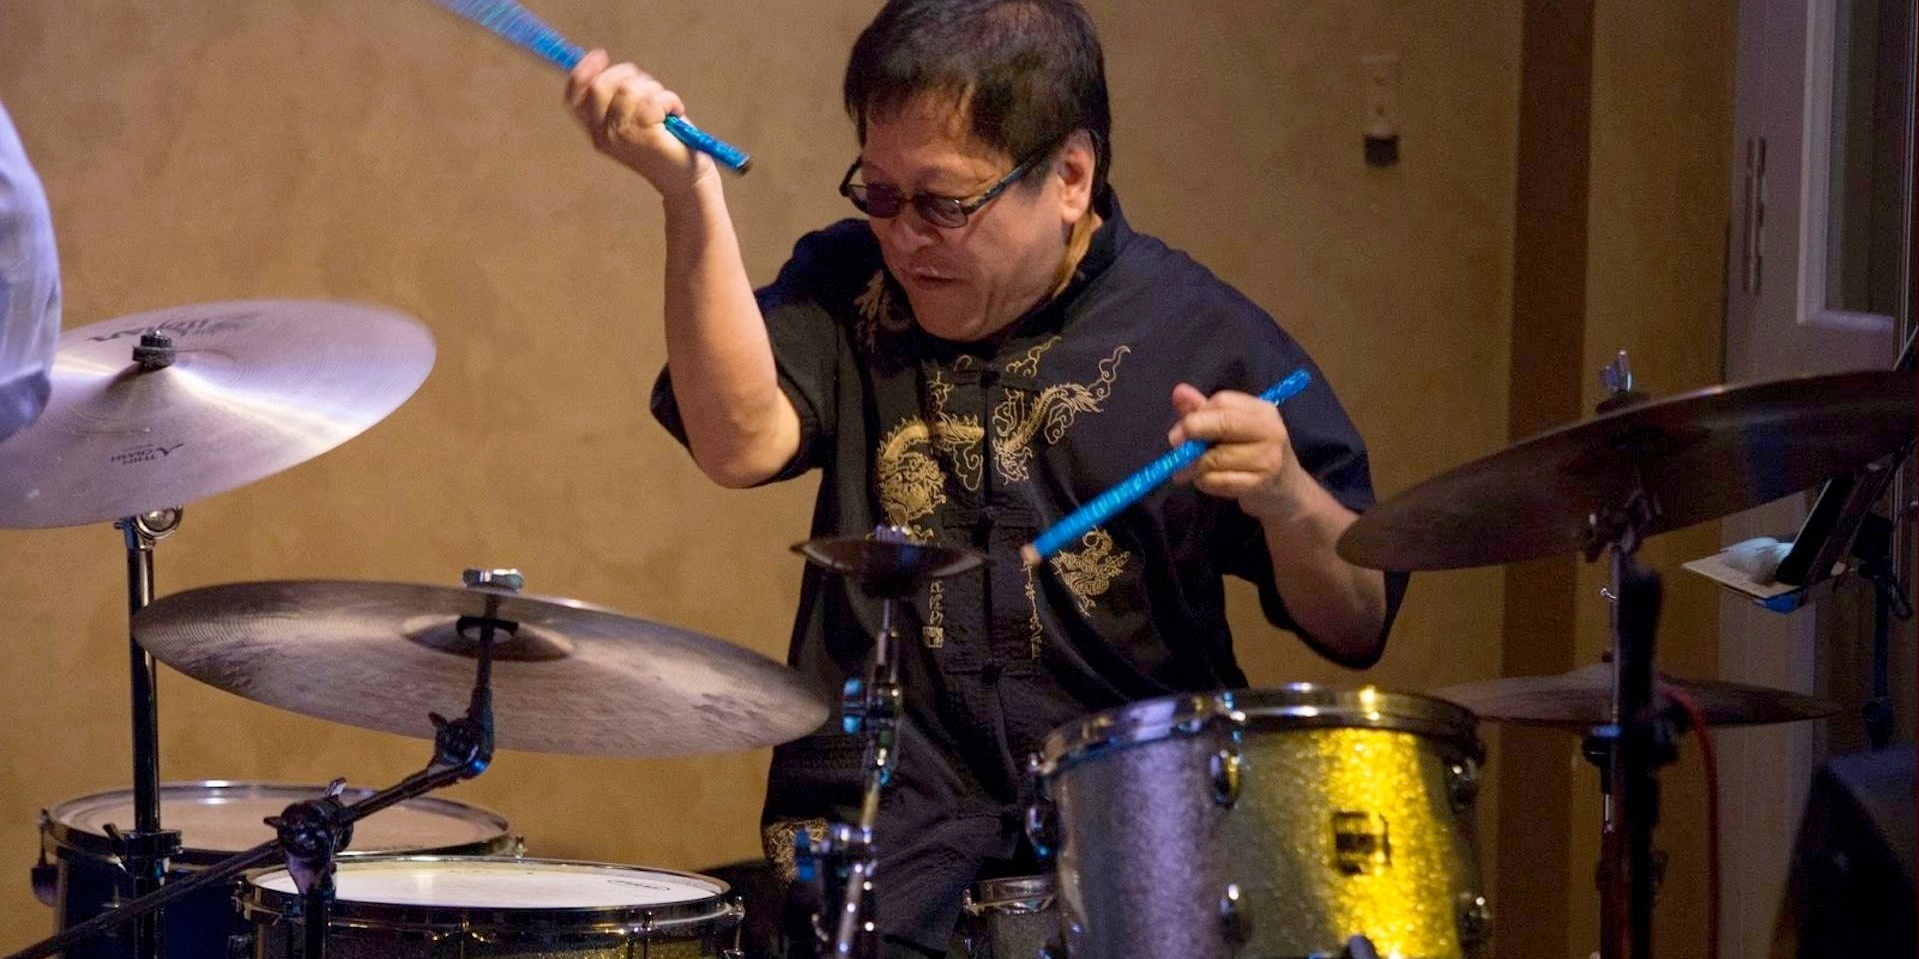 74-year-old drum legend Louis Soliano kickstarts series documenting Singapore's music giants